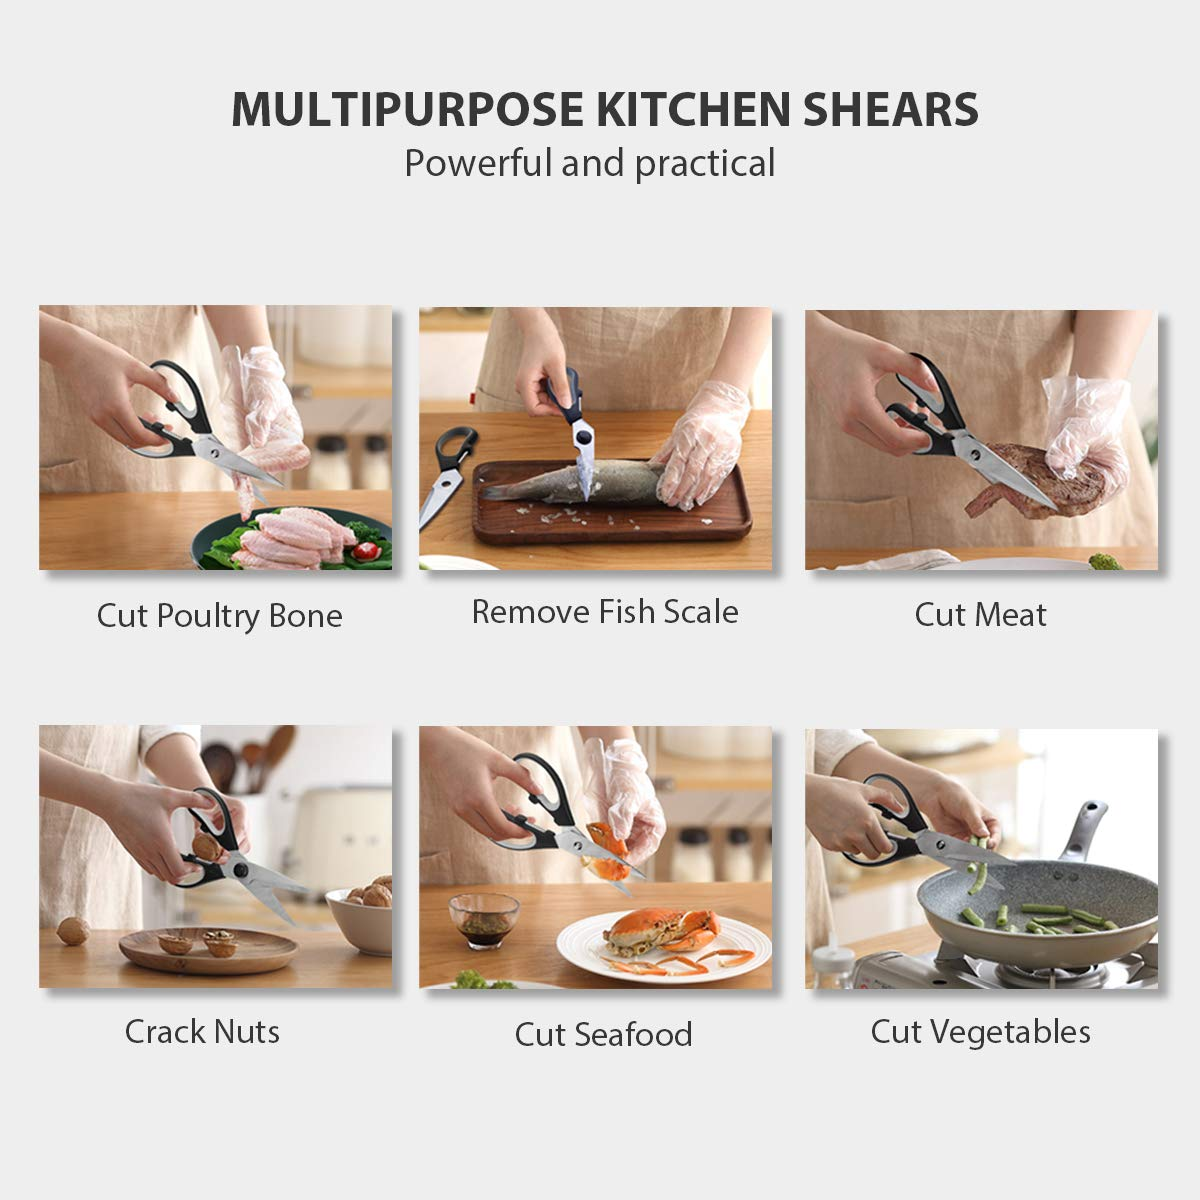 Kitchen Scissors, CUSIBOX Multifunction Come-Apart Kitchen Shears, Heavy Duty Scissors for Herbs, Chicken, Meat and Vegetables, Black